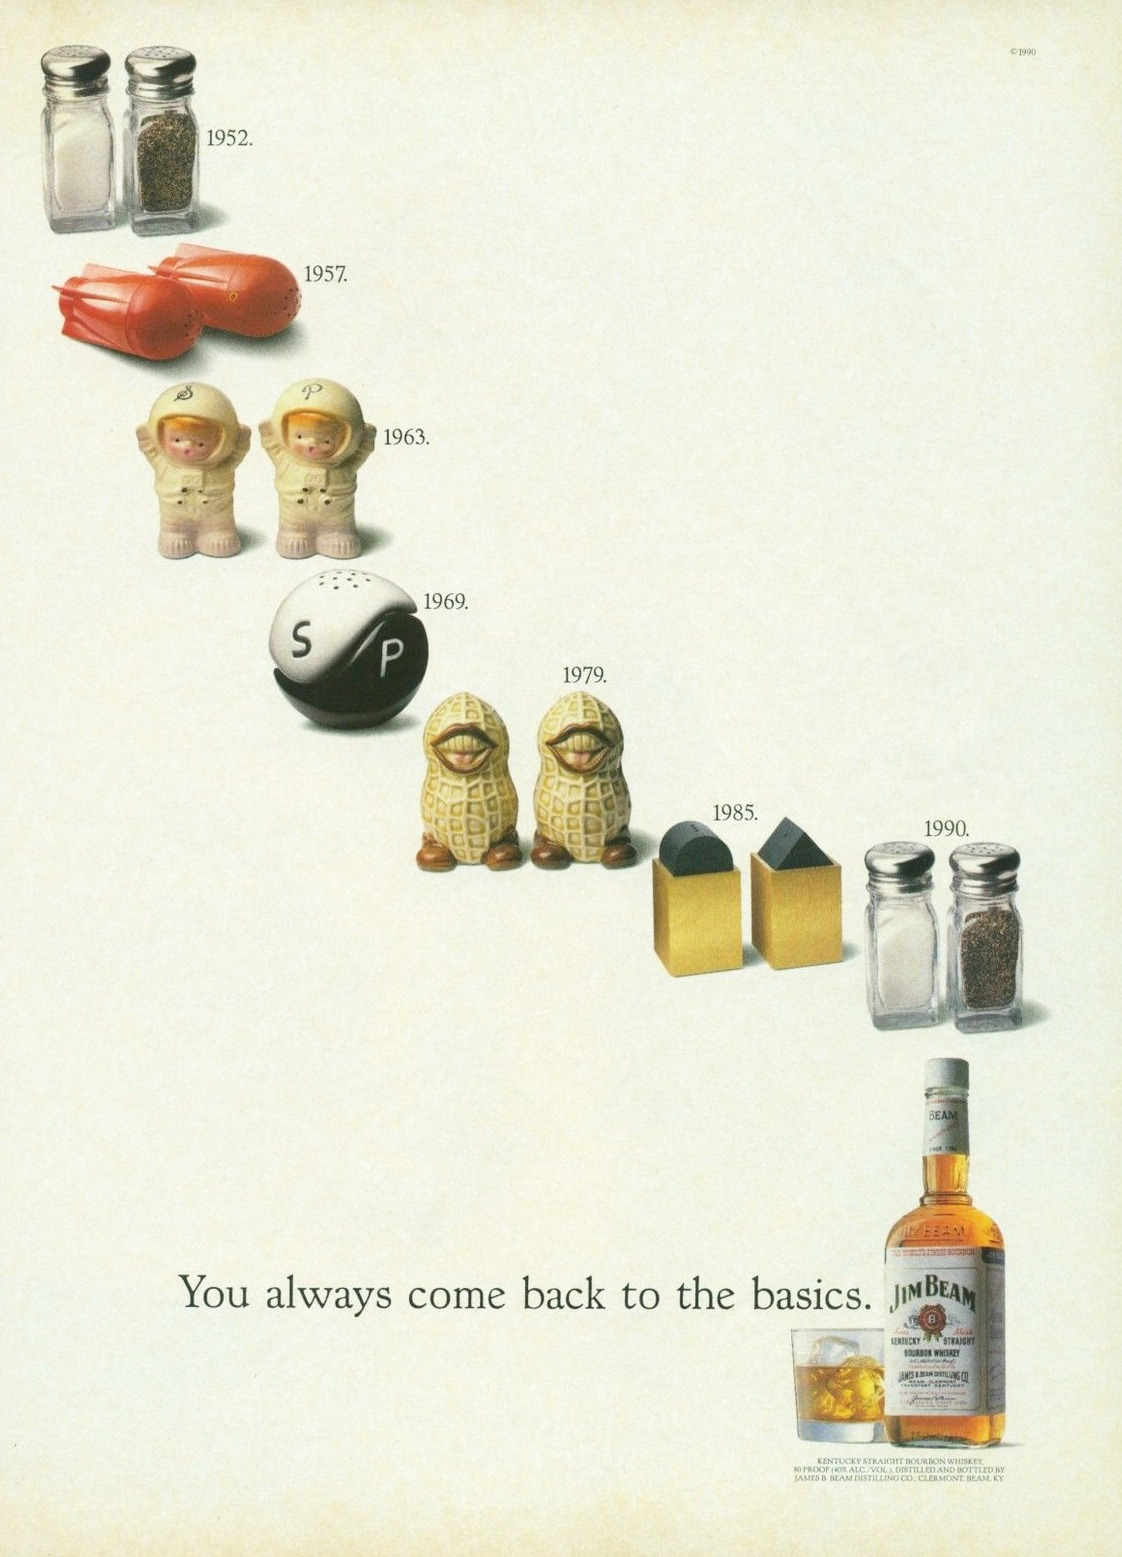 design-is-fine: Jim Beam, You always come back to the basics campaign, 1990. USA.